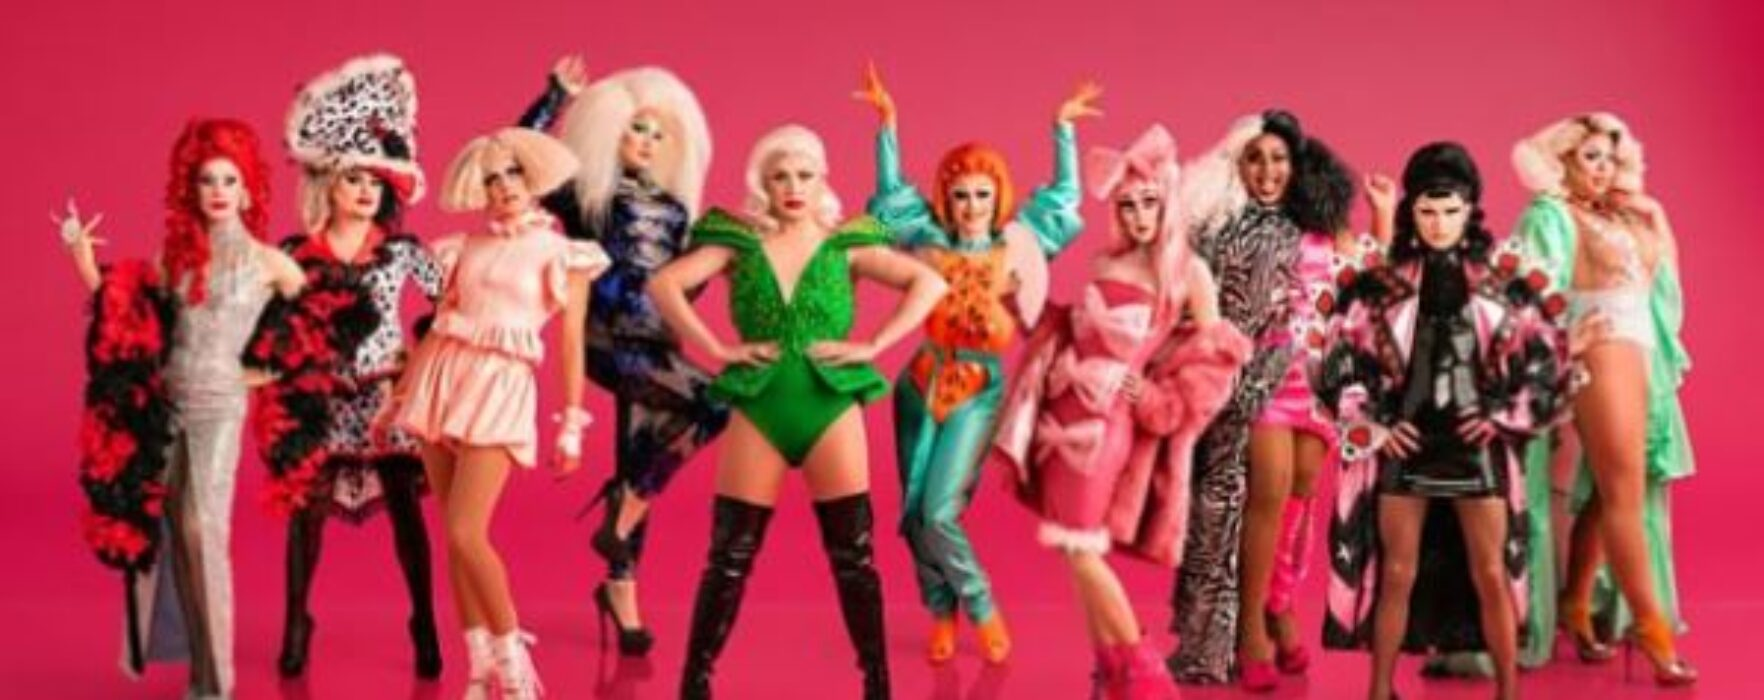 The line-up for RuPaul's Drag Race UK is revealed with their first official appearance at Manchester Pride